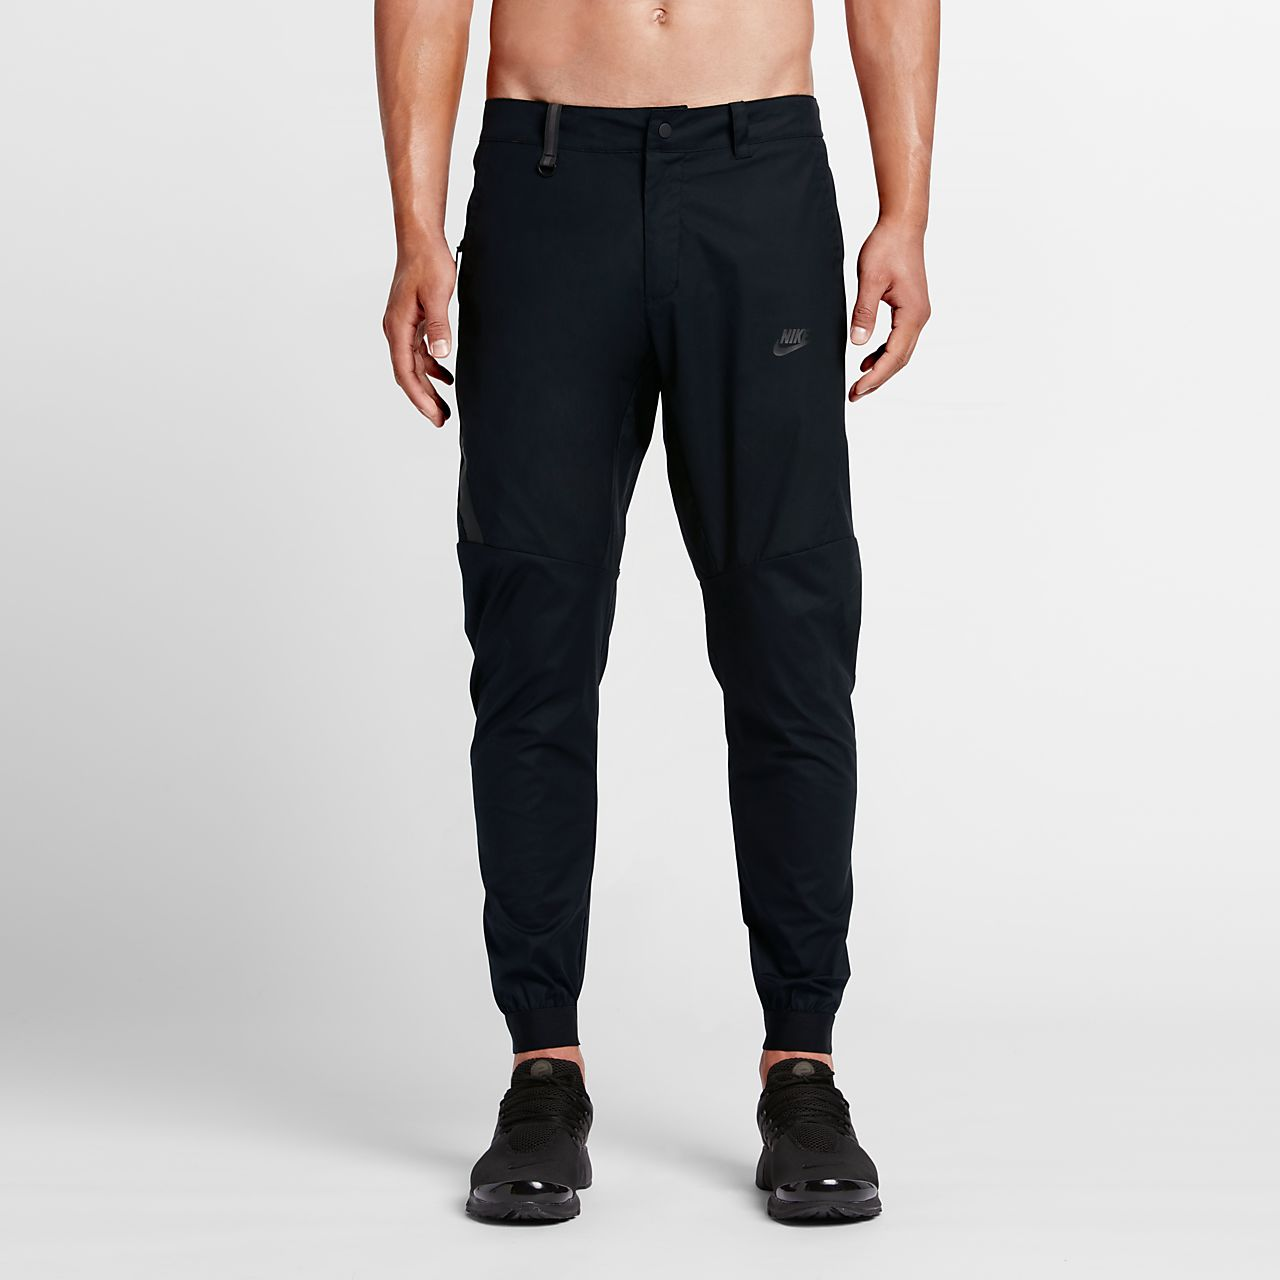 Nike W Sportswear joggers Free Shipping Professional Inexpensive Online Cheap Sale Latest Great Deals Sale Online 2DCS93tBSt